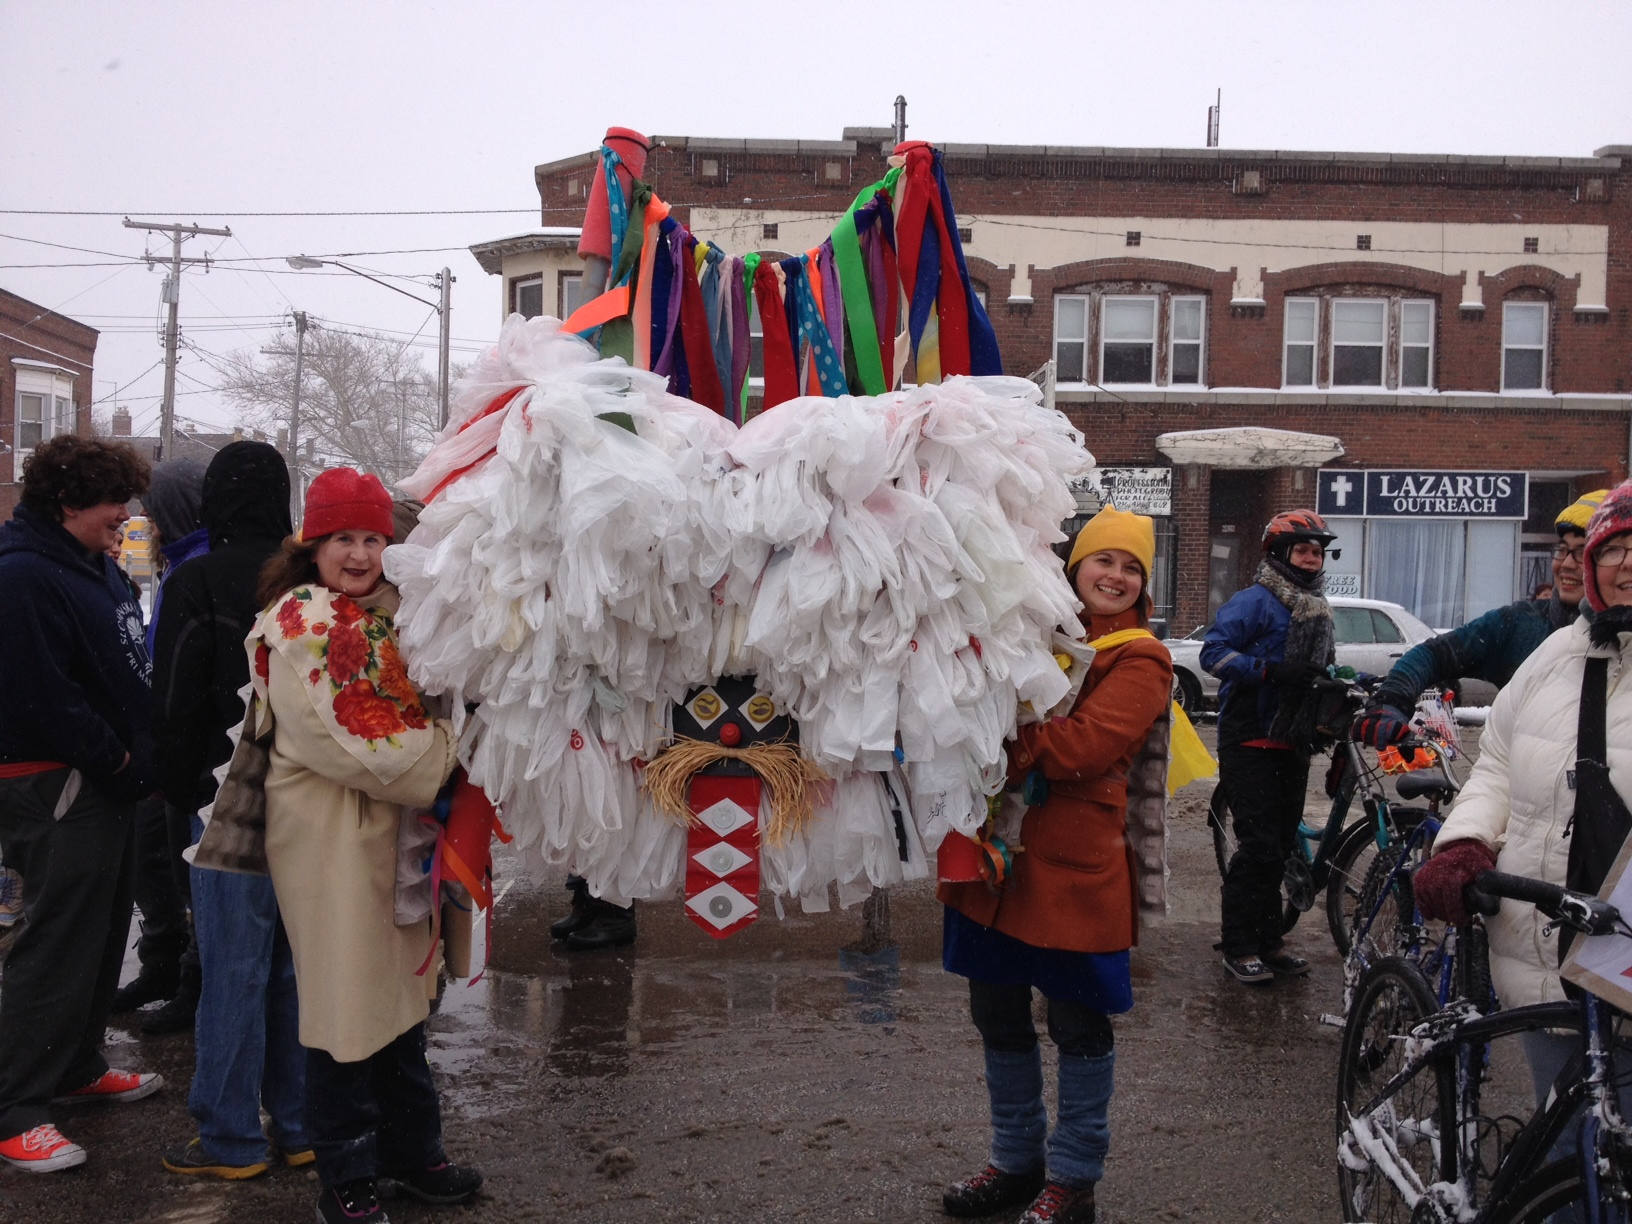 Kurentovanje 2015 --Upcycle Parts Shop's awesome volunteer Michele Kilroy delivered a homespun upcycled kurent that was so awesome it made us scream with enthusiasm to march in the snowstorm!  Made of 600 plastic bags, he goes by the name Goran and really captures the St. Clair neighborhood:  Slovenian + upcycling + good at cold weather and proud to walk down St. Clair Avenue.